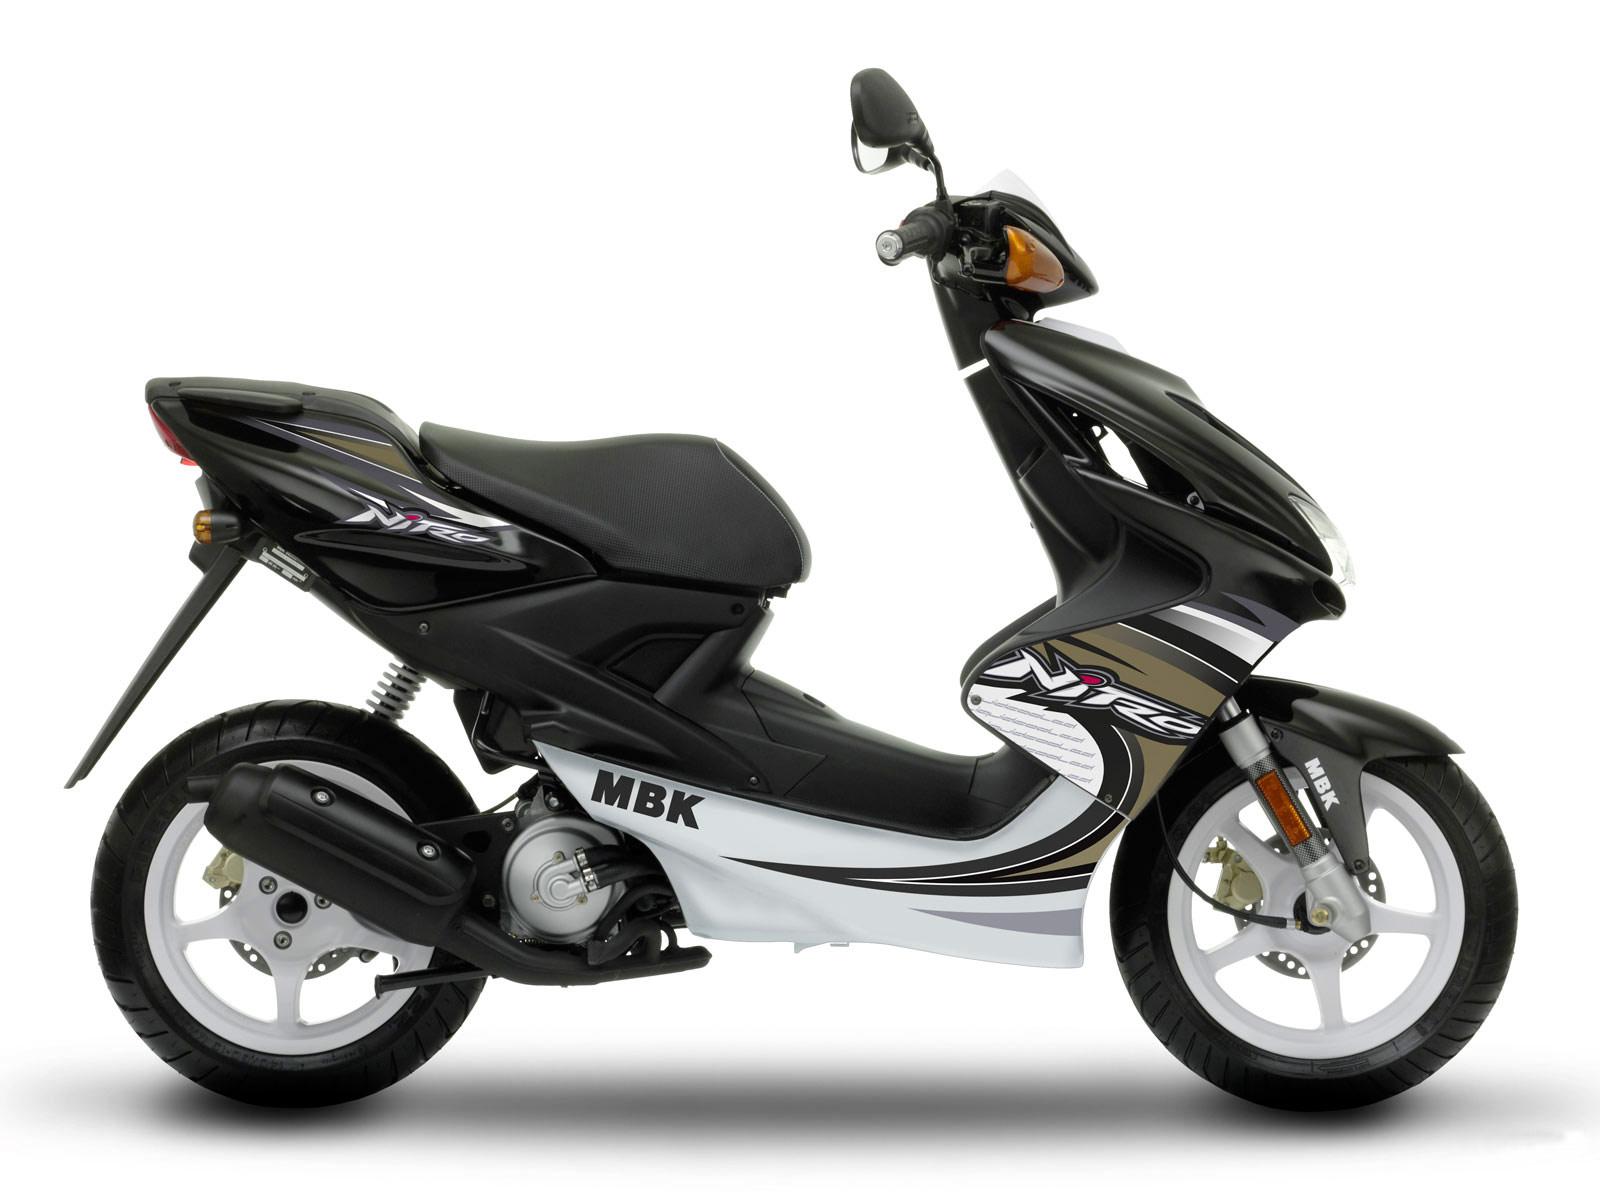 2010 mbk nitro scooter pictures accident lawyers info. Black Bedroom Furniture Sets. Home Design Ideas